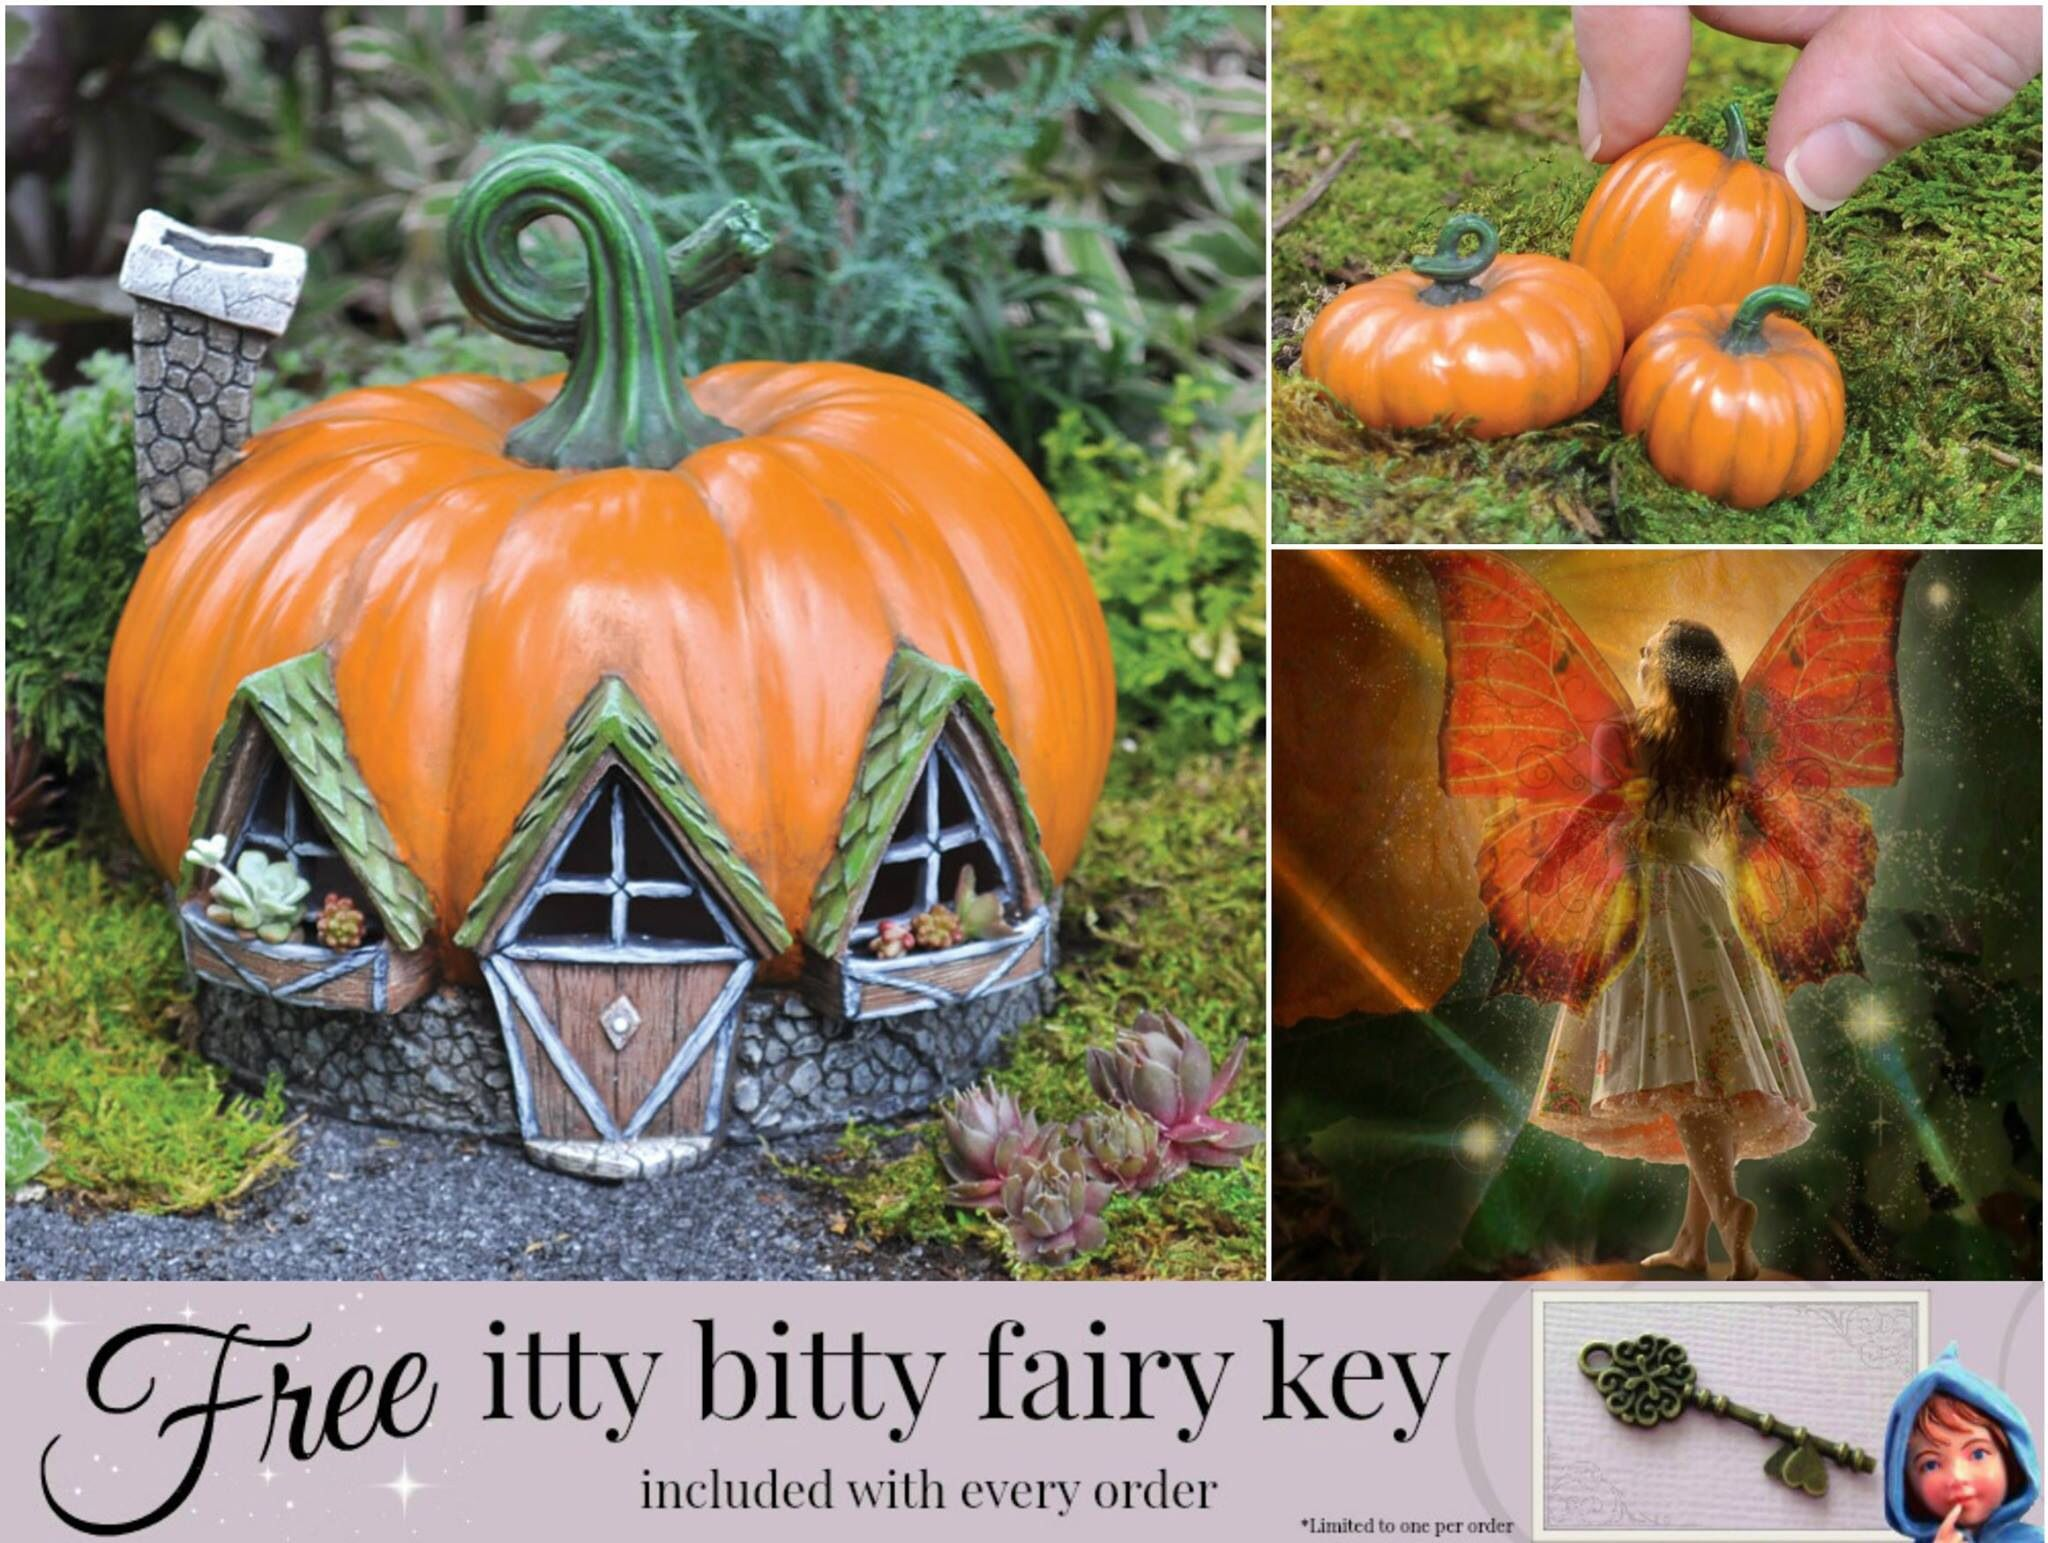 This website has everything you need to create a beautiful fairy garden for  your little princess